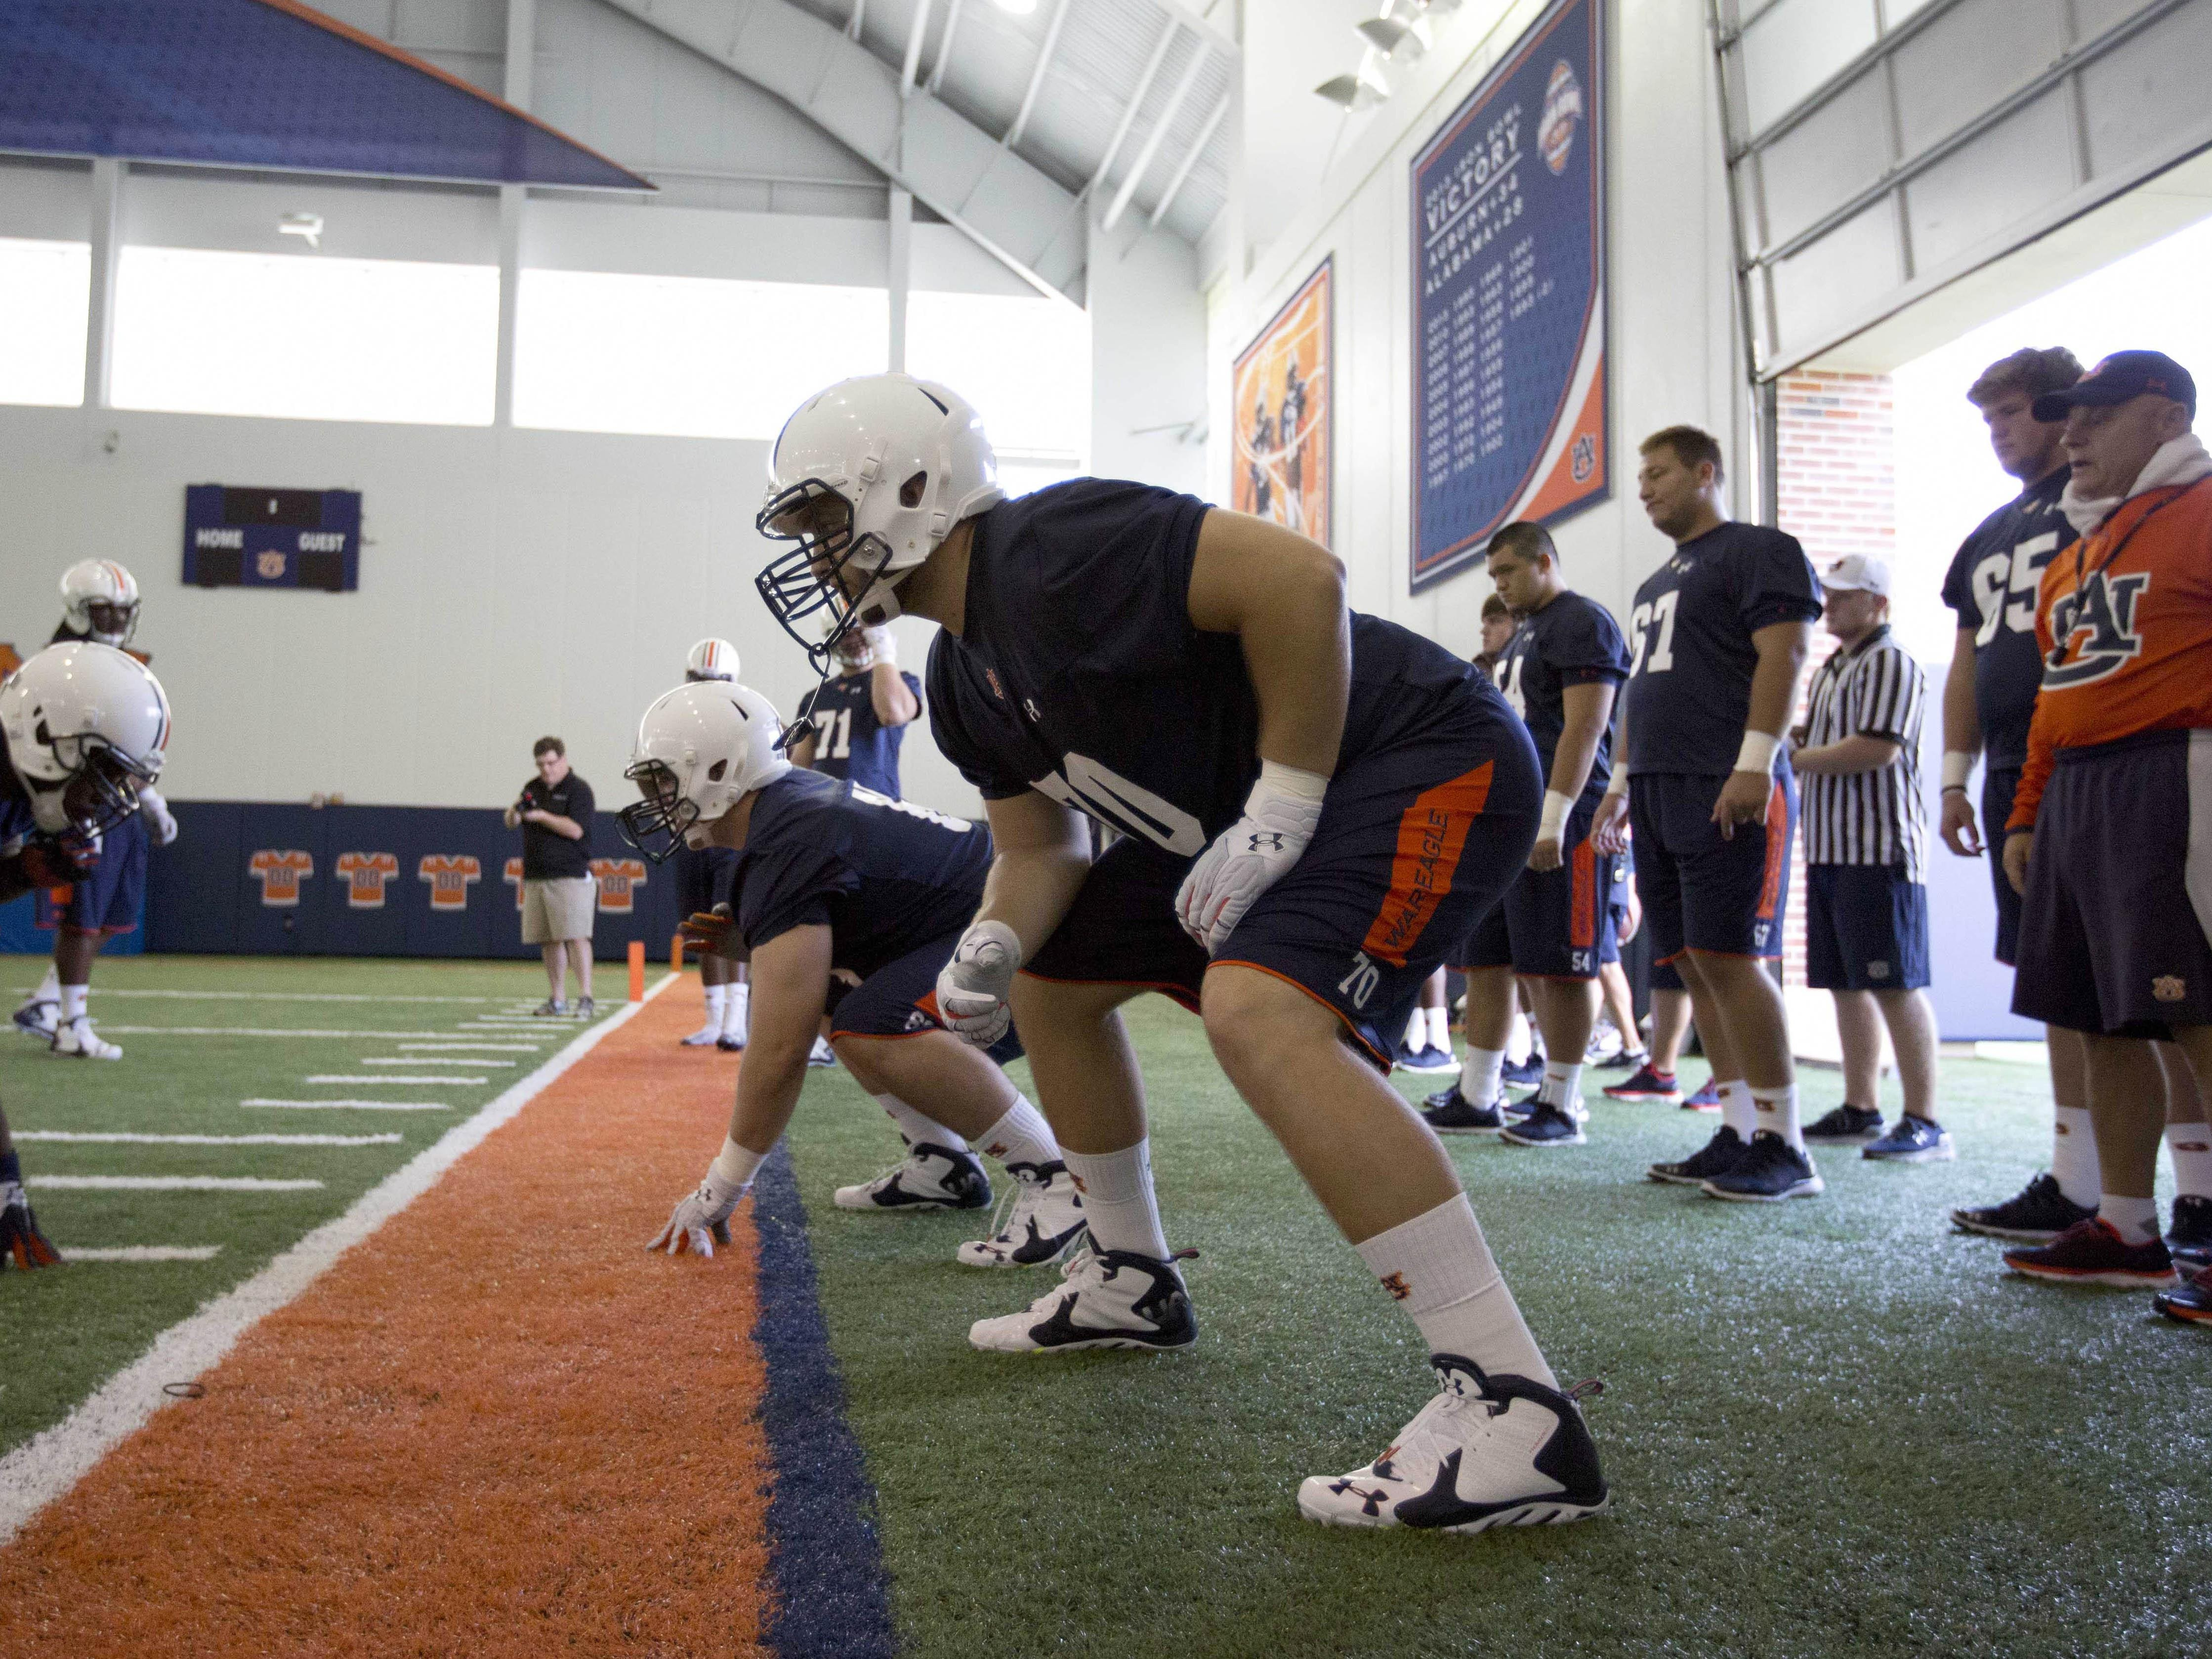 Auburn offensive tackle Robert Leff participates with others in a drill during Wednesday's football practice. Leff and other veterans are helping the freshmen learn the ropes.